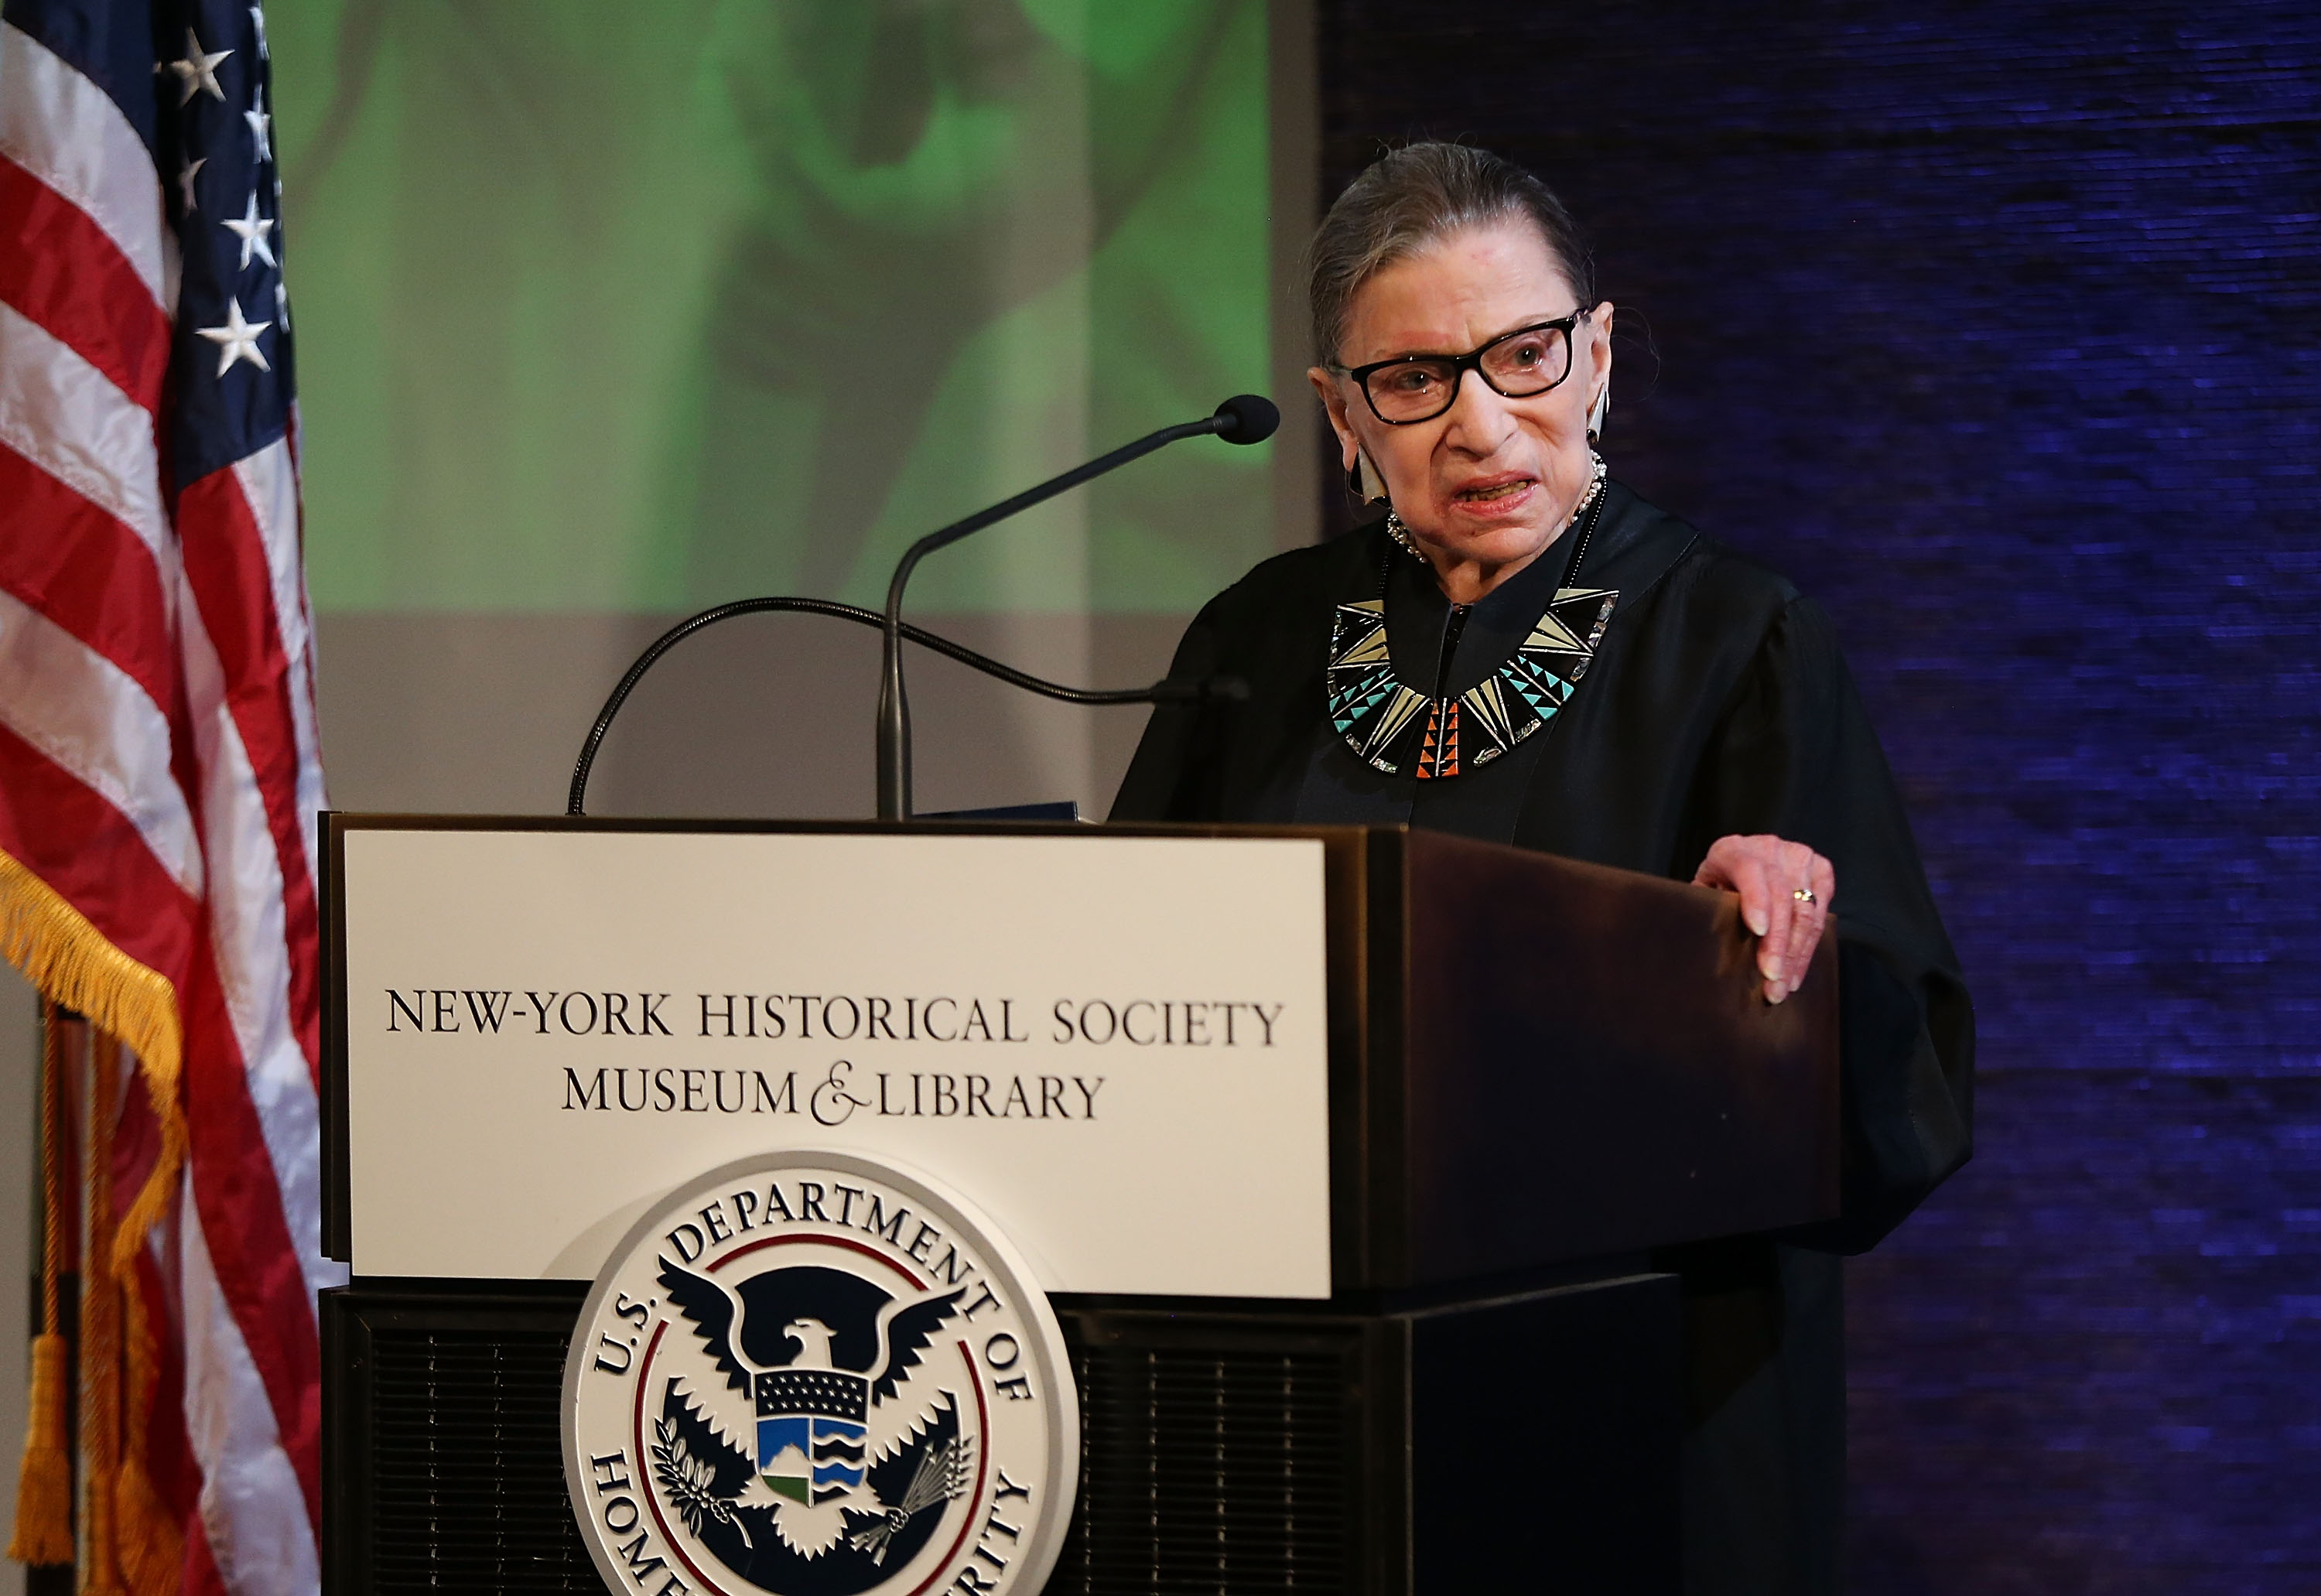 Ruth Bader Ginsburg's incredible ability to bounce back